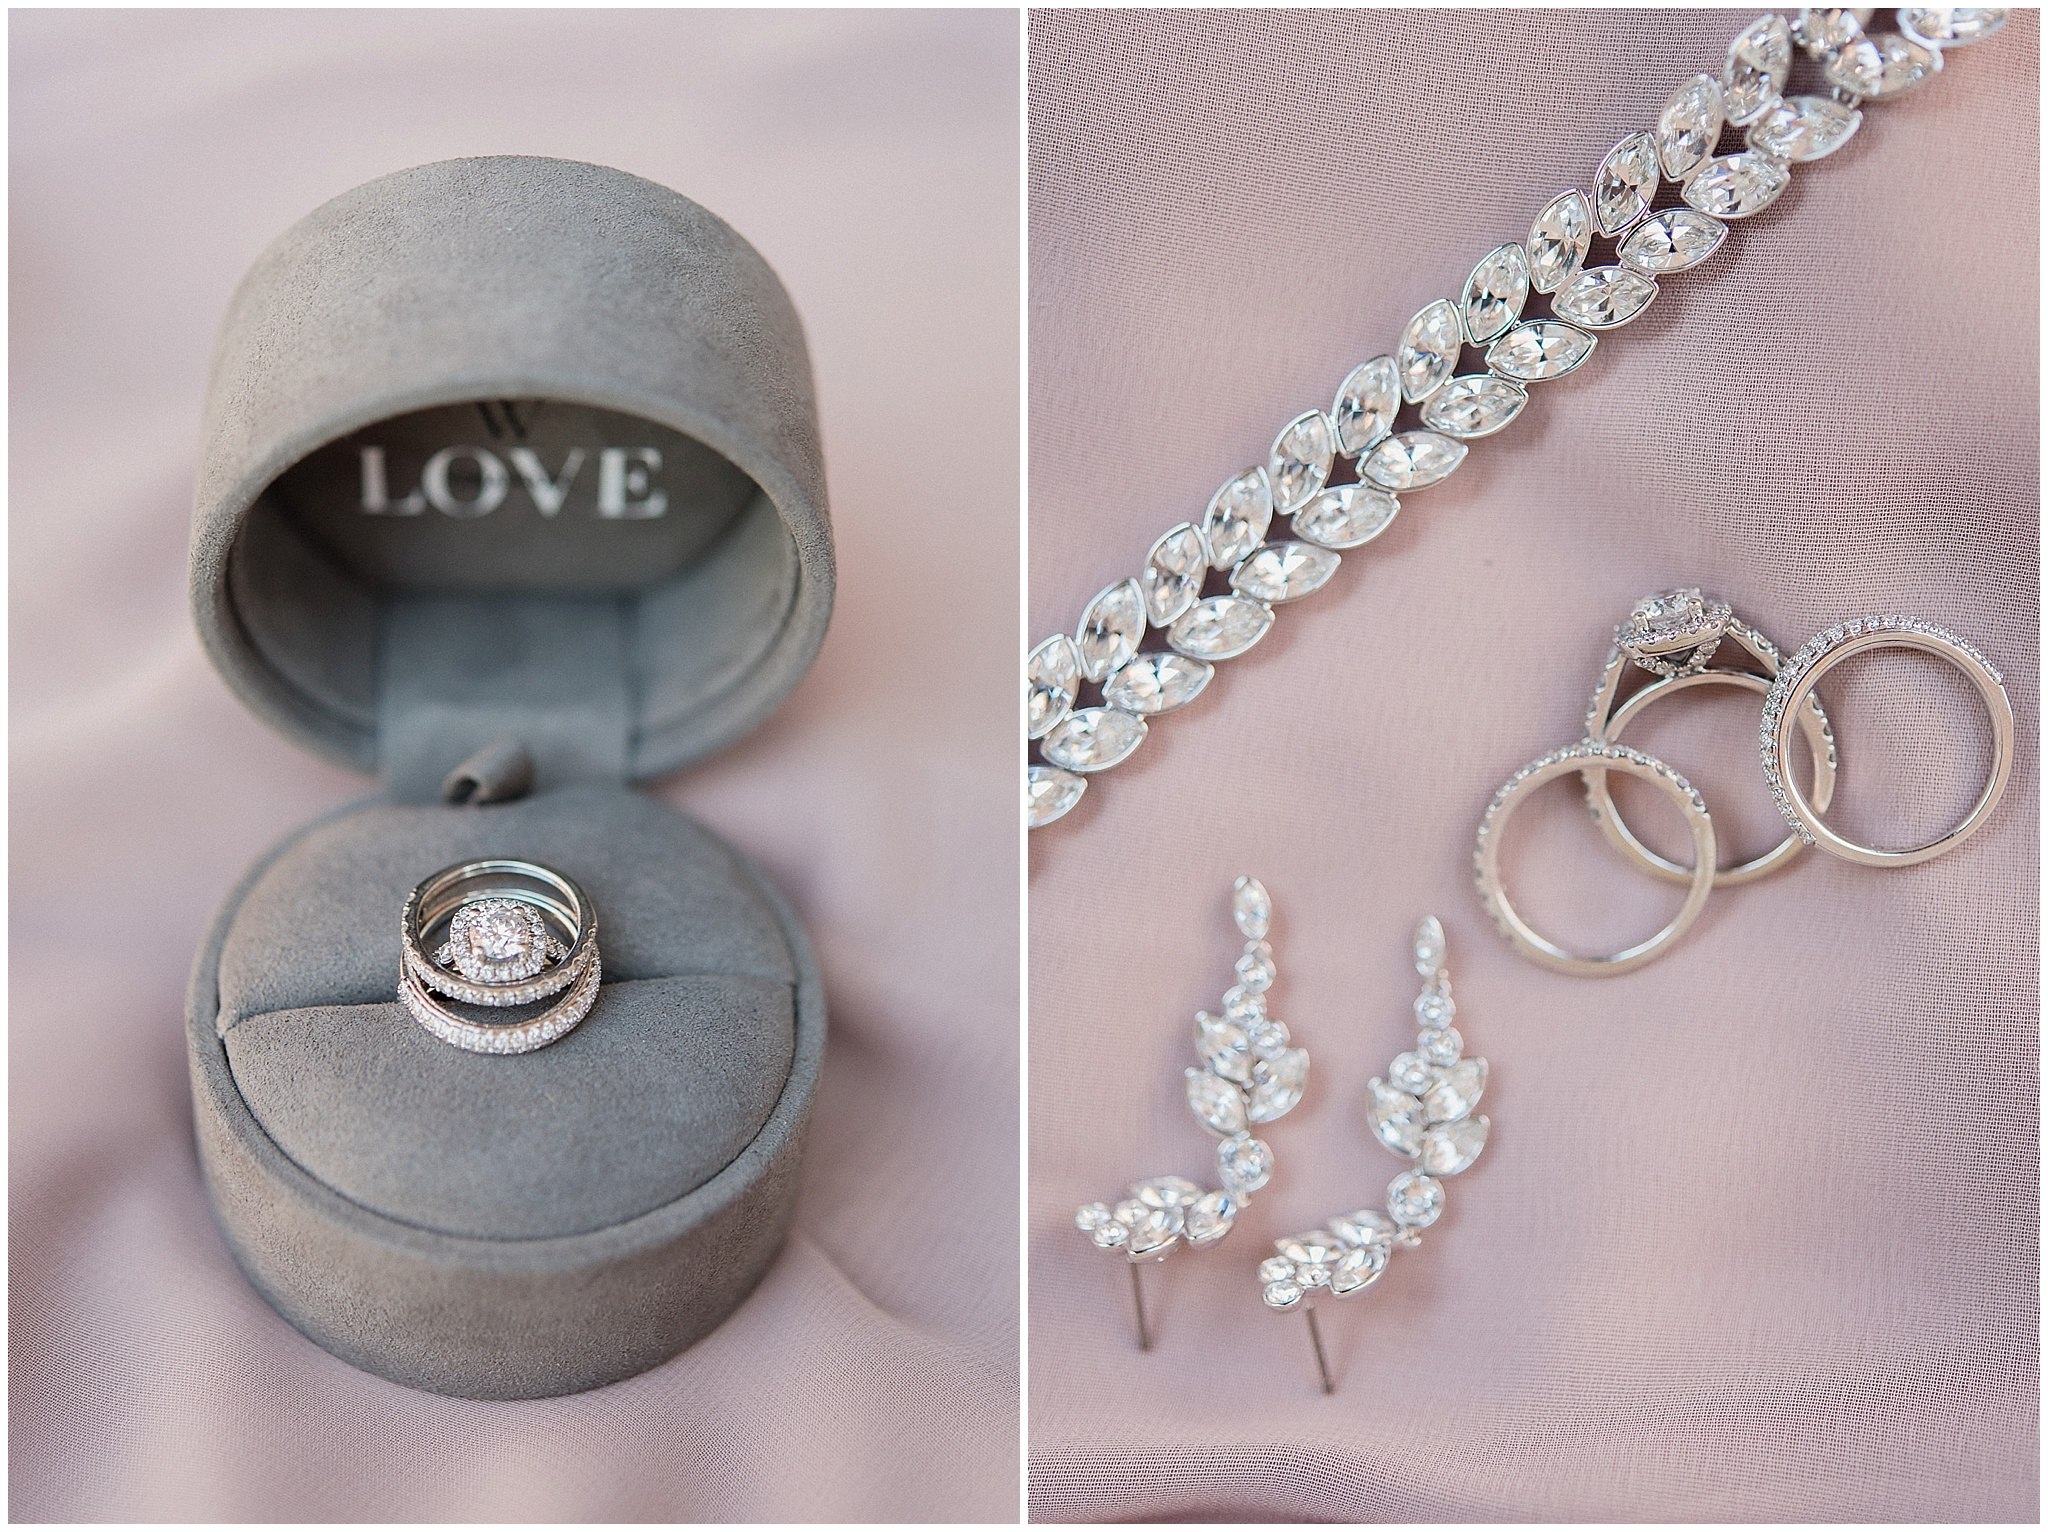 Wedding rings photographed by Jenn Kavanagh Photography